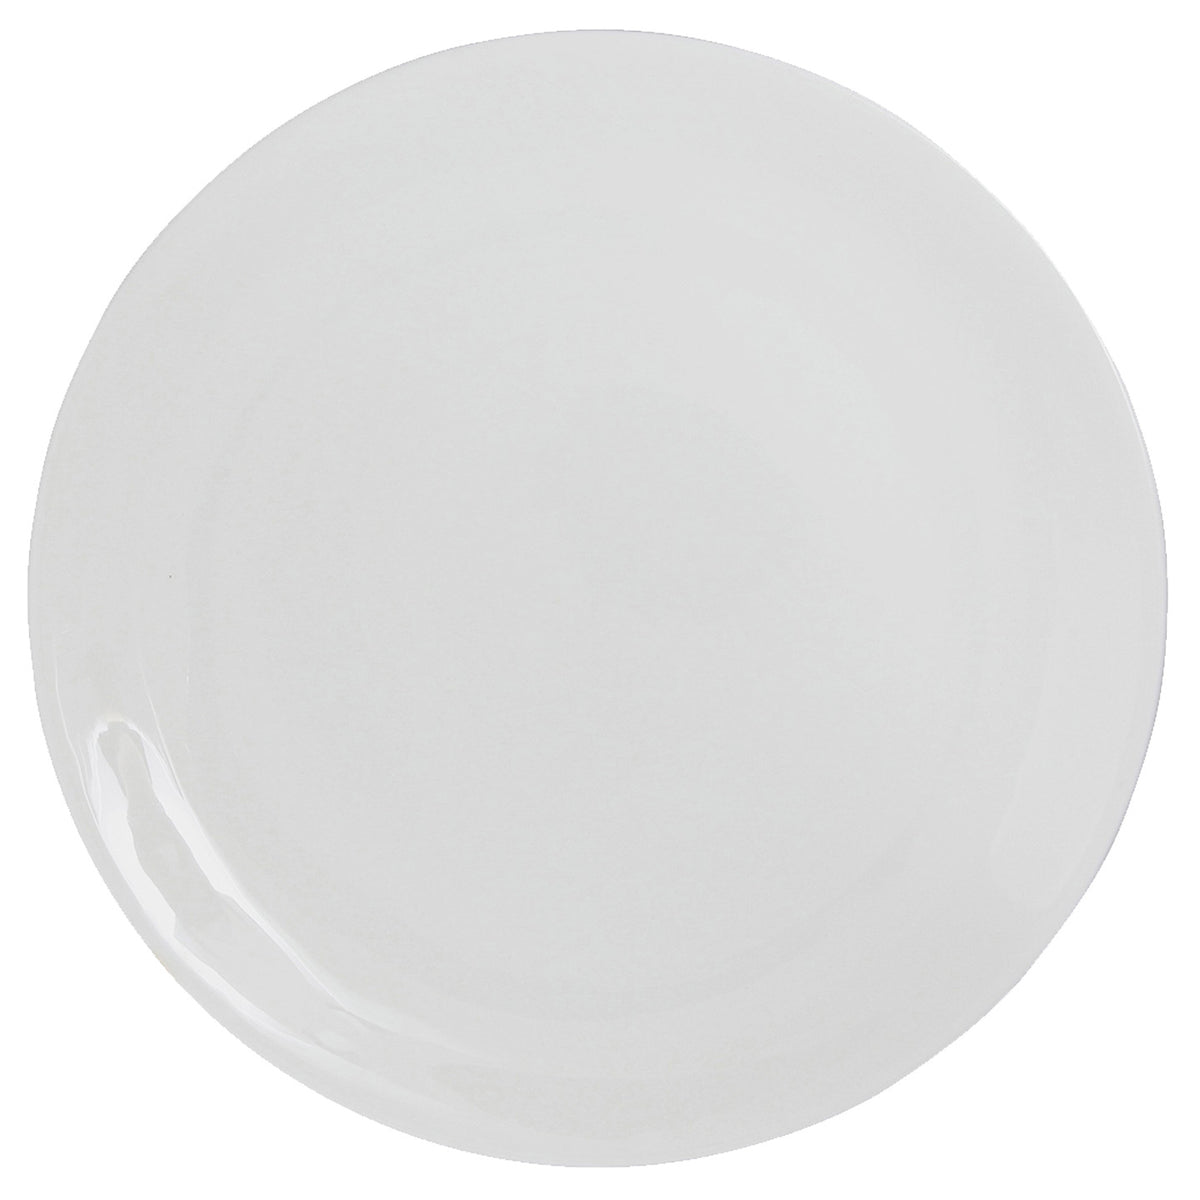 A Table Charger Plate